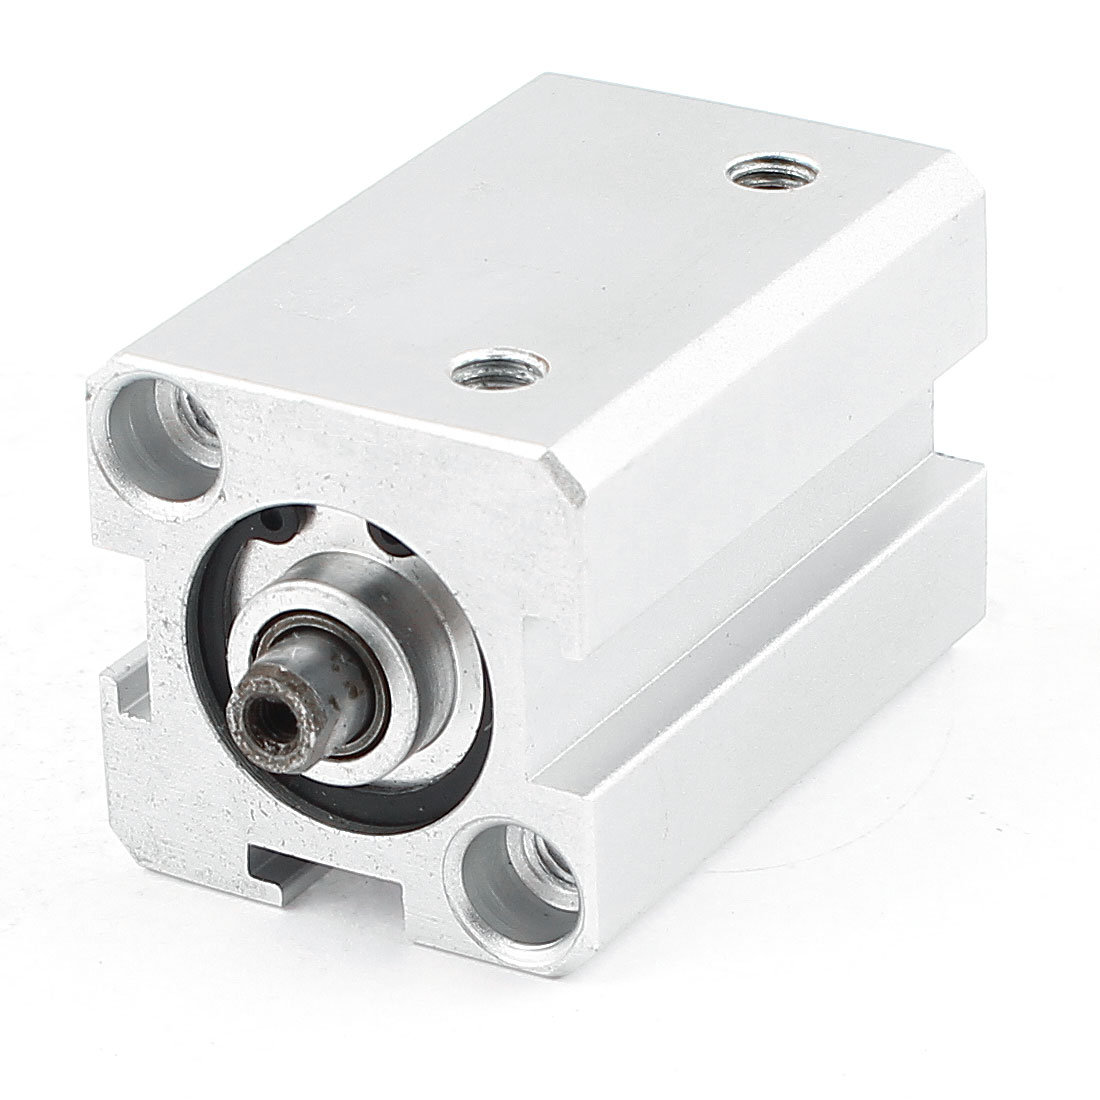 SDA16x25 16mm Bore 25mm Stroke Single Rod Aluminum Alloy Pneumatic Air Cylinder